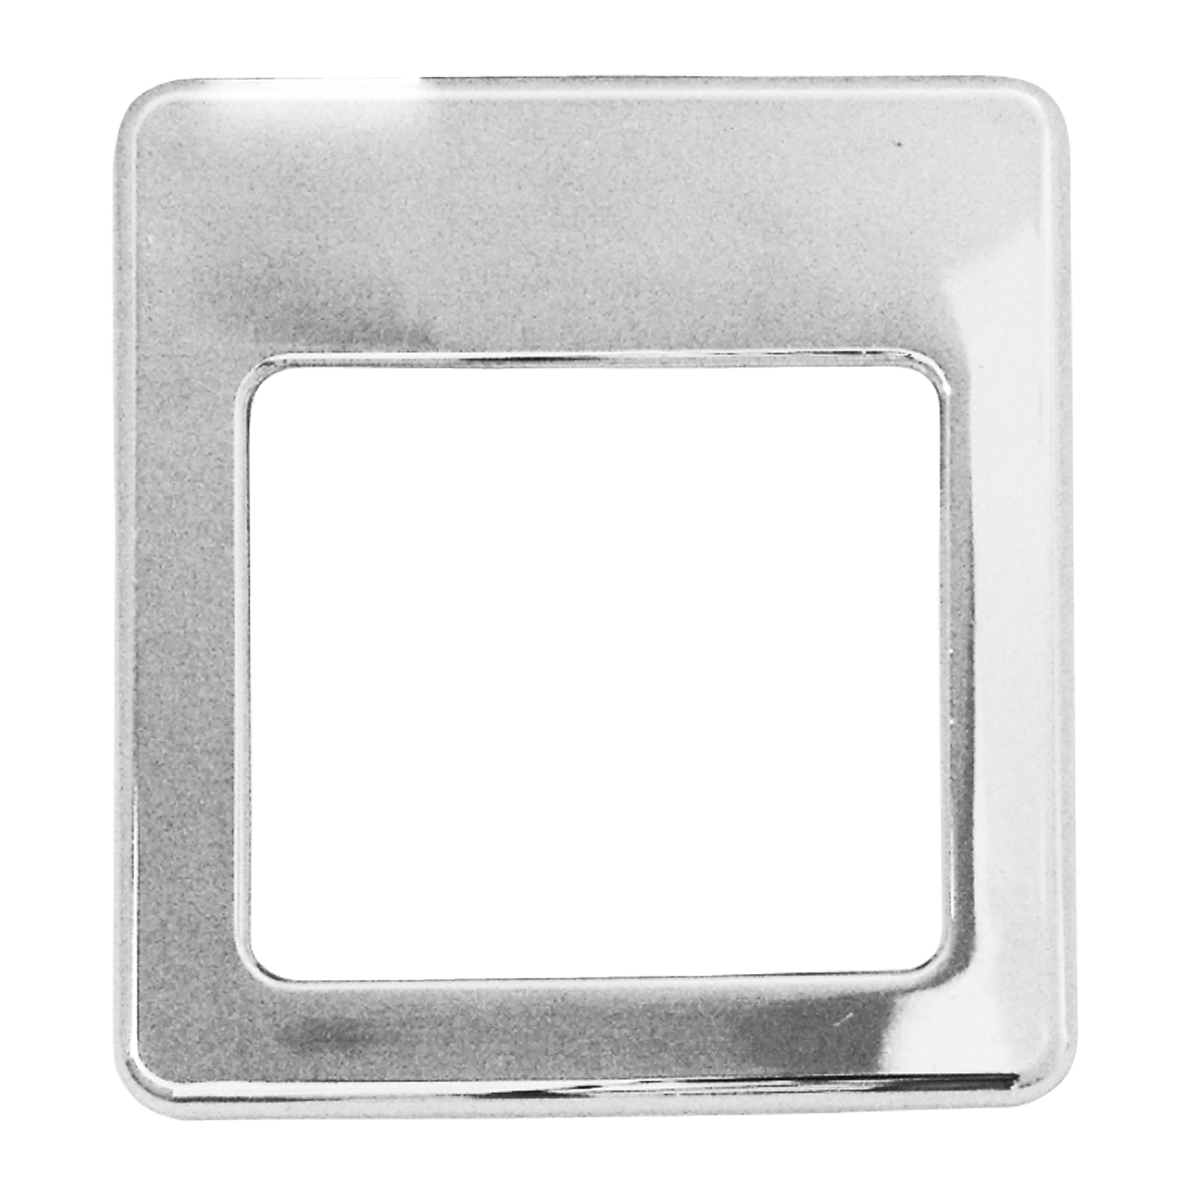 68940 Dome Light Cover for Western Star